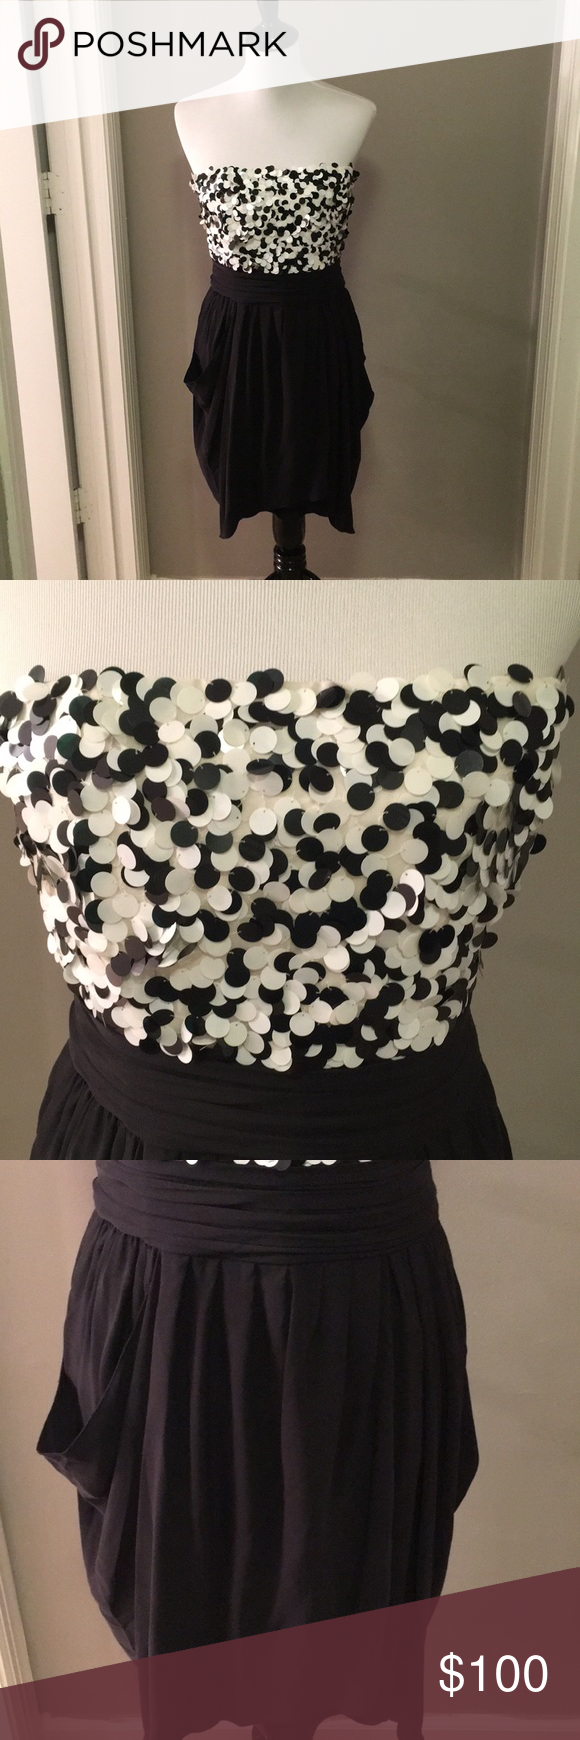 Euc Alice Olivia Black White Formal Dress Siz 10 In Like New Condition Brand Size Smoke Free Home Dresses Mini